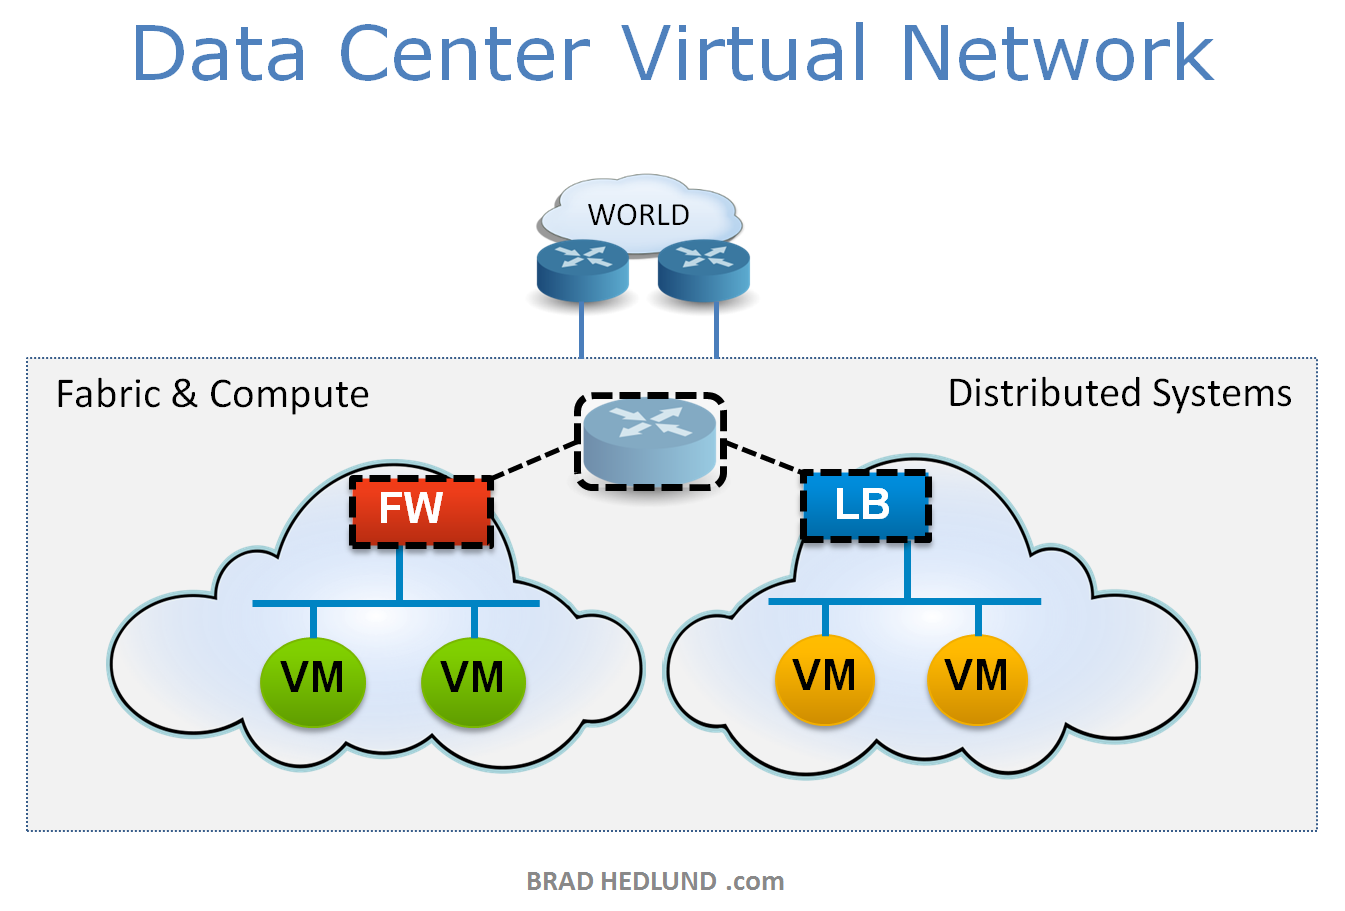 Data Center Virtual Network